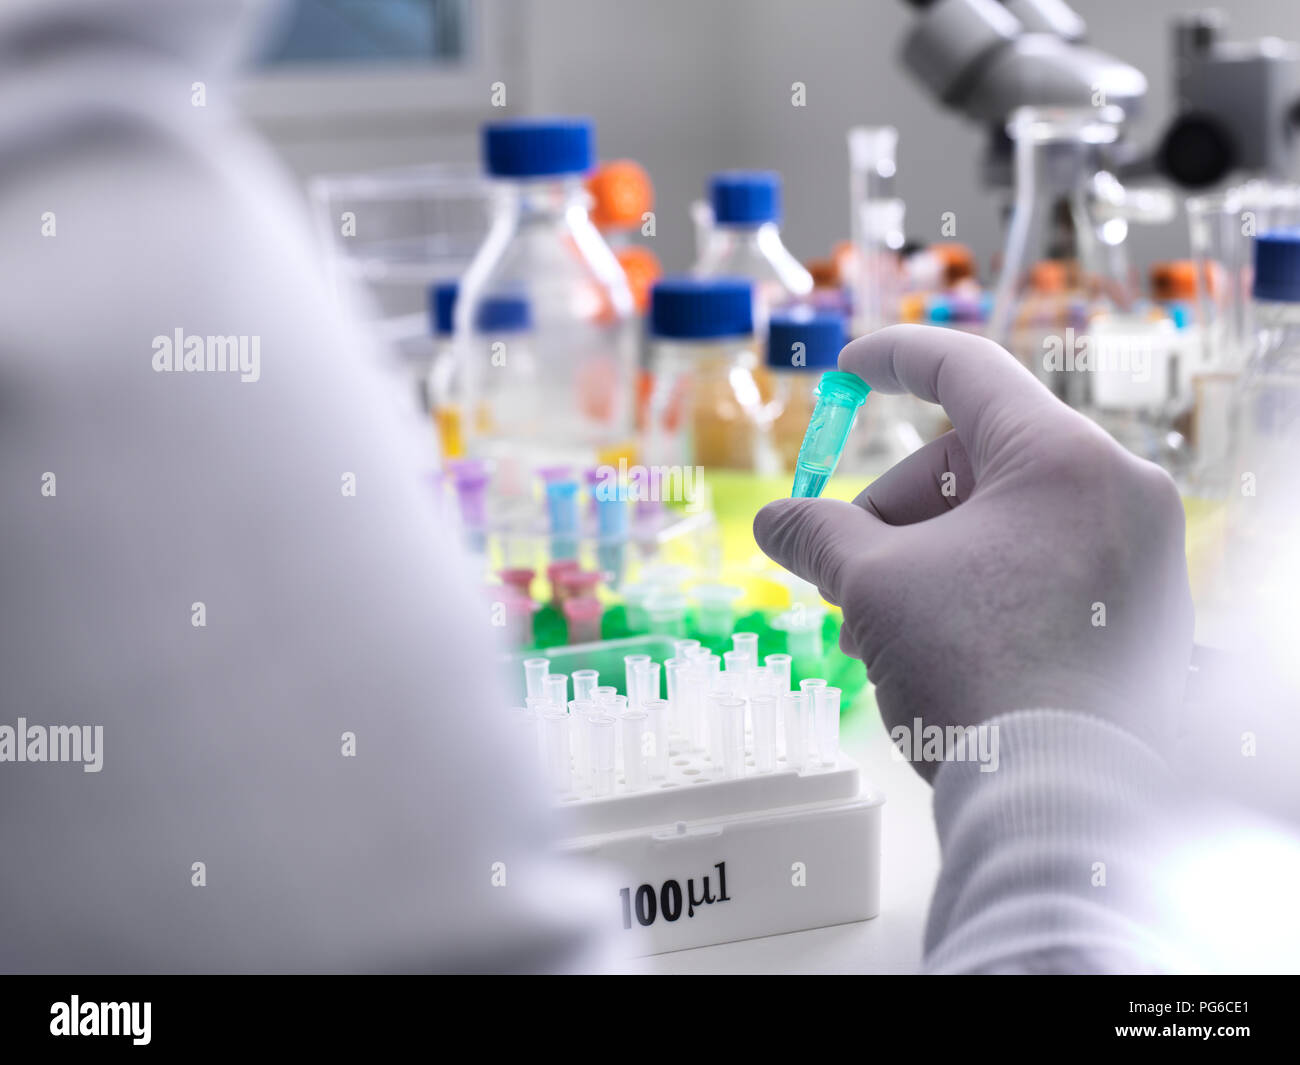 Biotechnology Research, Scientist viewing specimens in a vial during an experiment in the laboratory - Stock Image